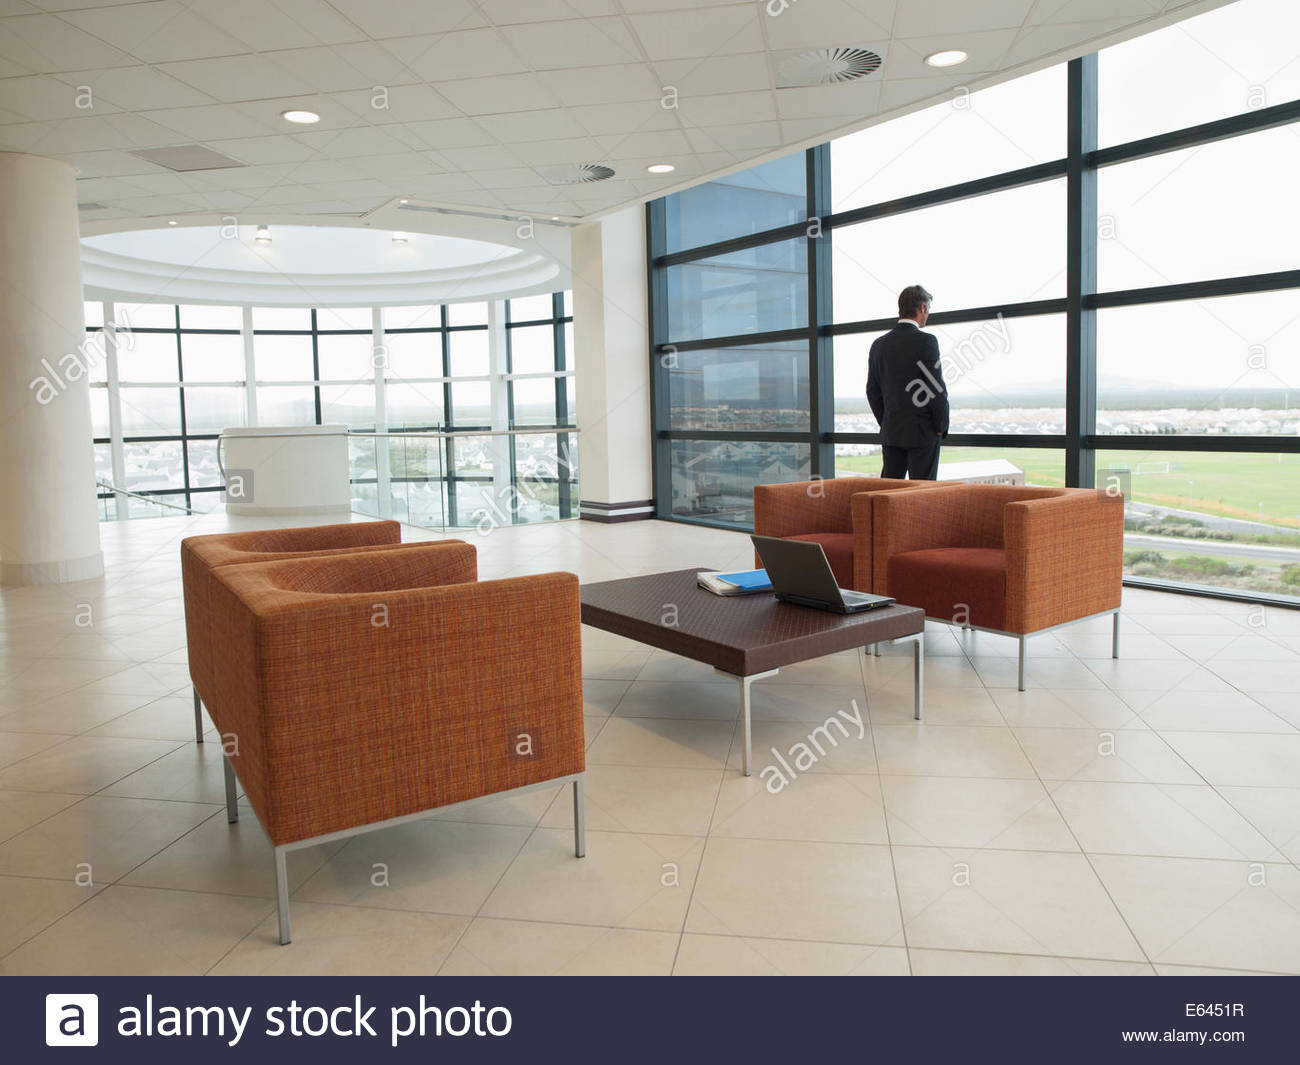 Businessman standing in modern waiting area - Stock Image